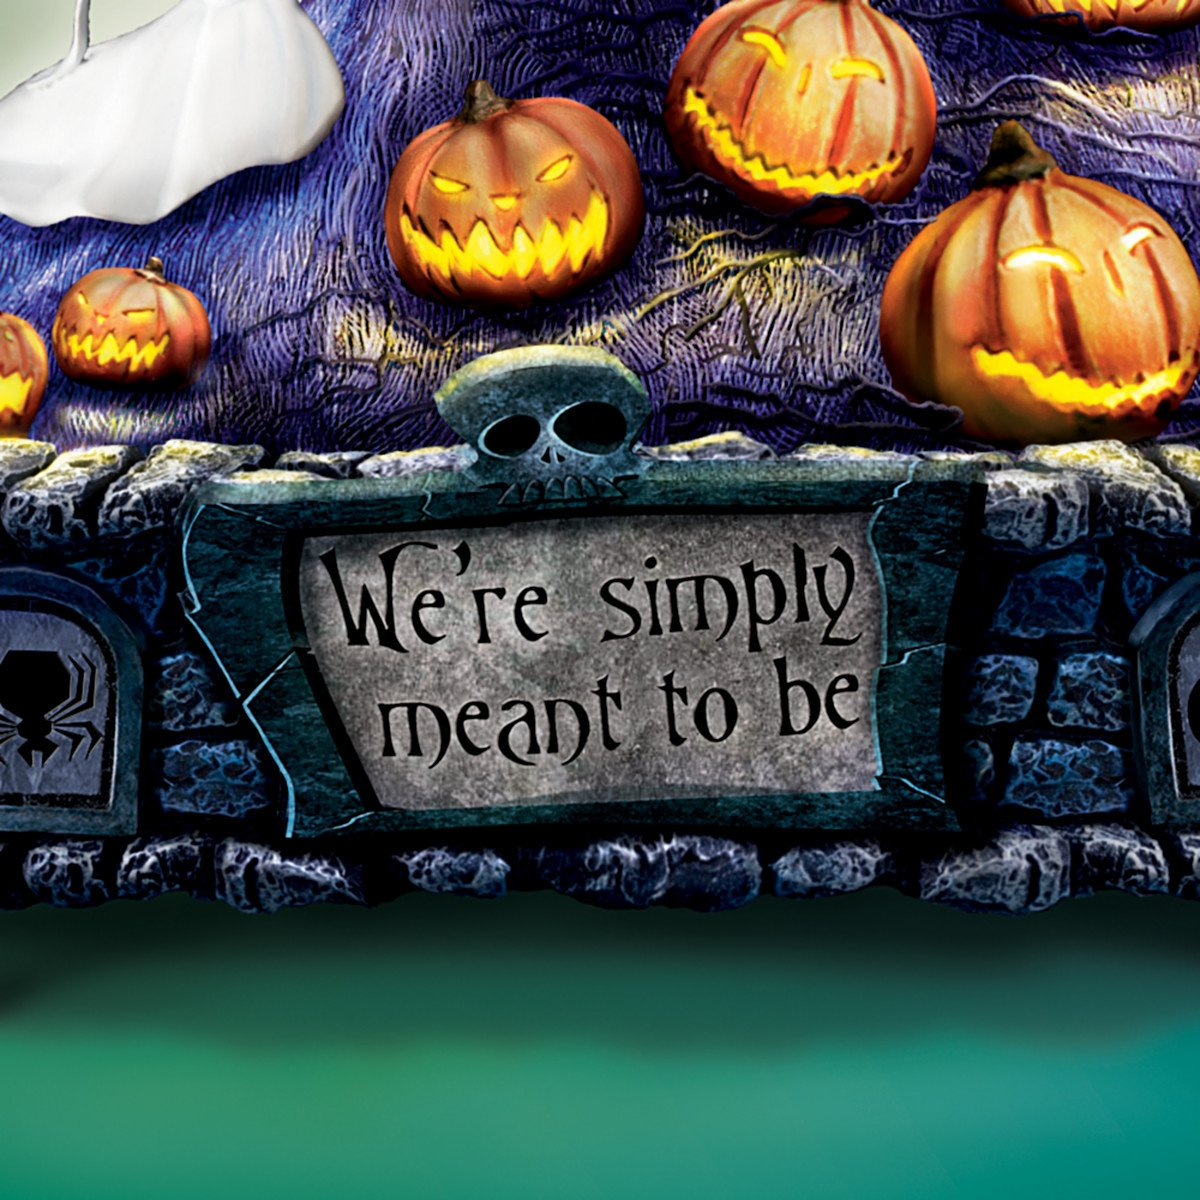 Amazon.com: The Nightmare Before Christmas Simply Meant To Be Jack ...